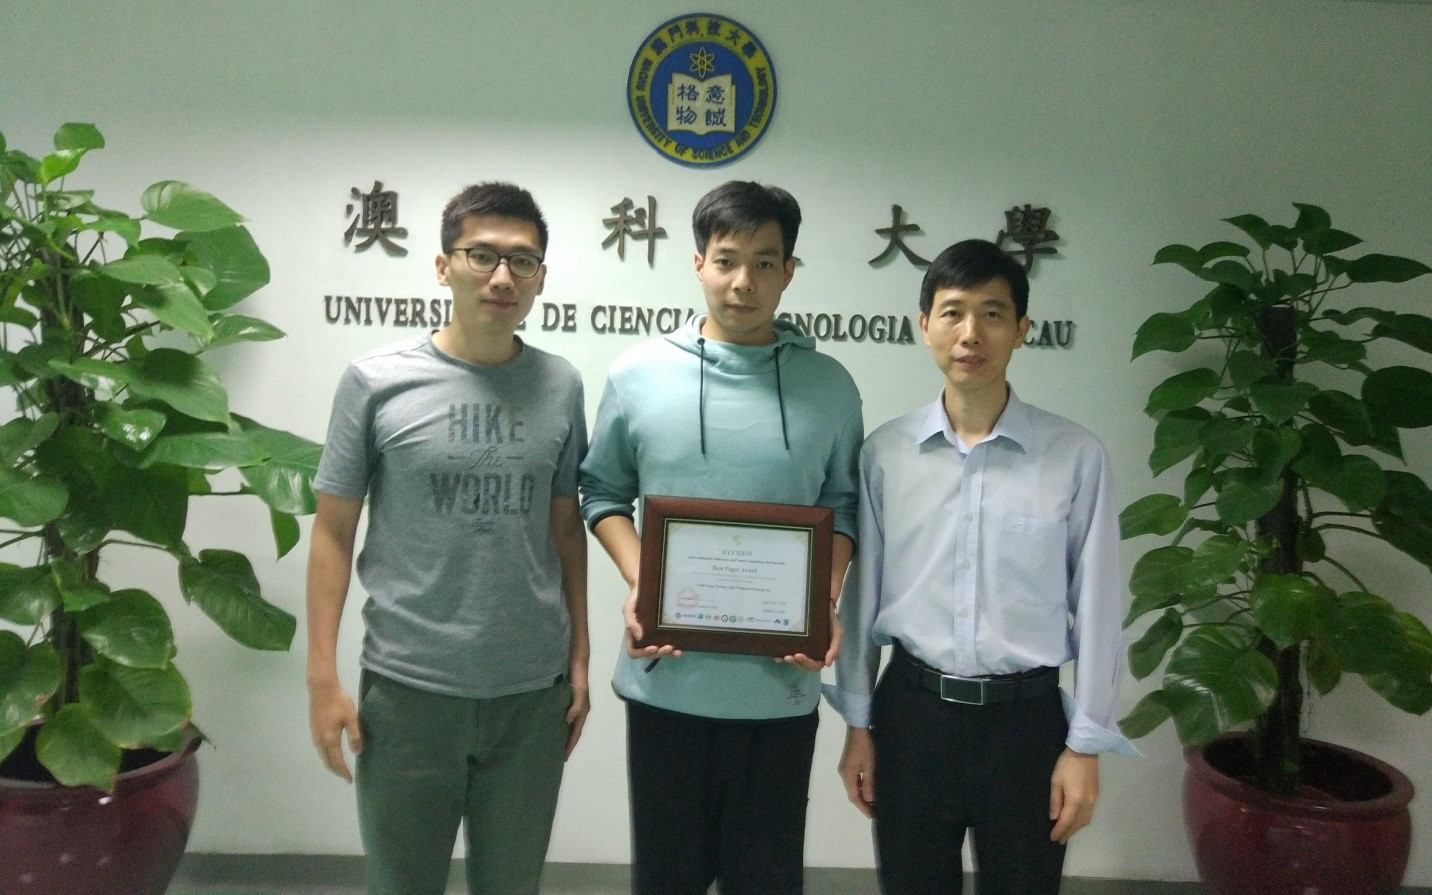 FI assistant professor Cheang Chak Fong and his master student Wang Yiqin won the best paper award in the international conference ICCCS2018.